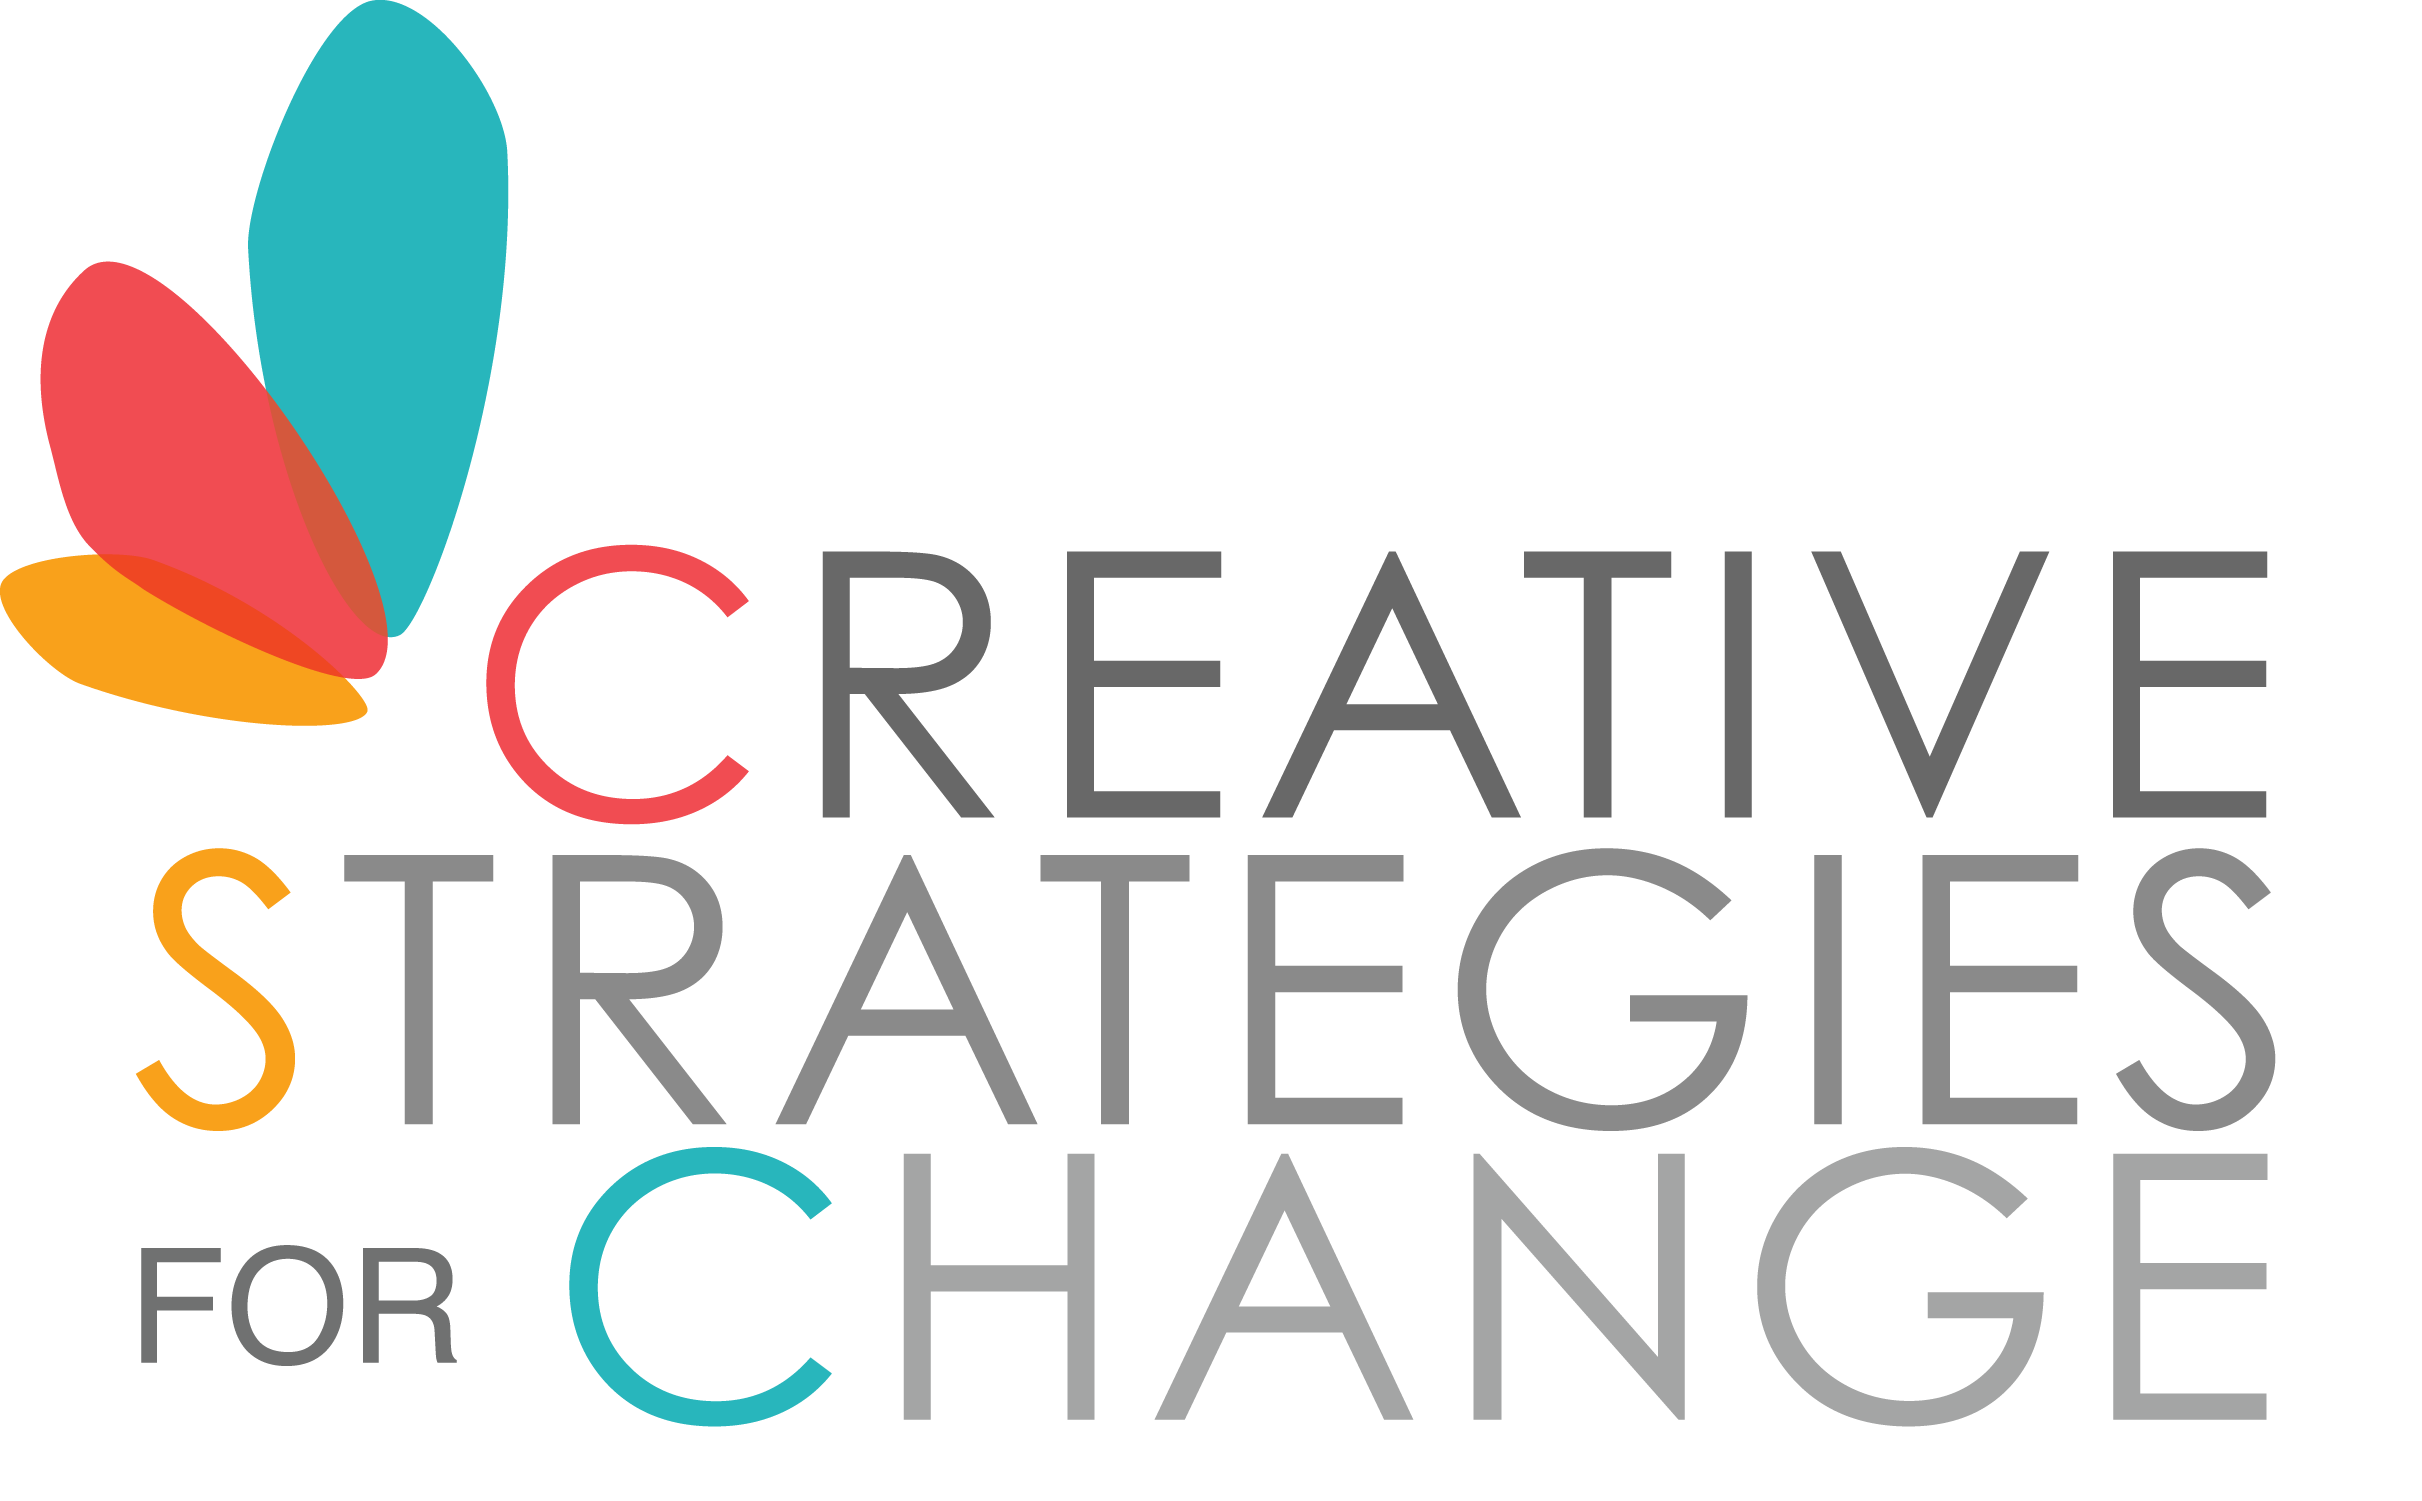 Creative Strategies for Change